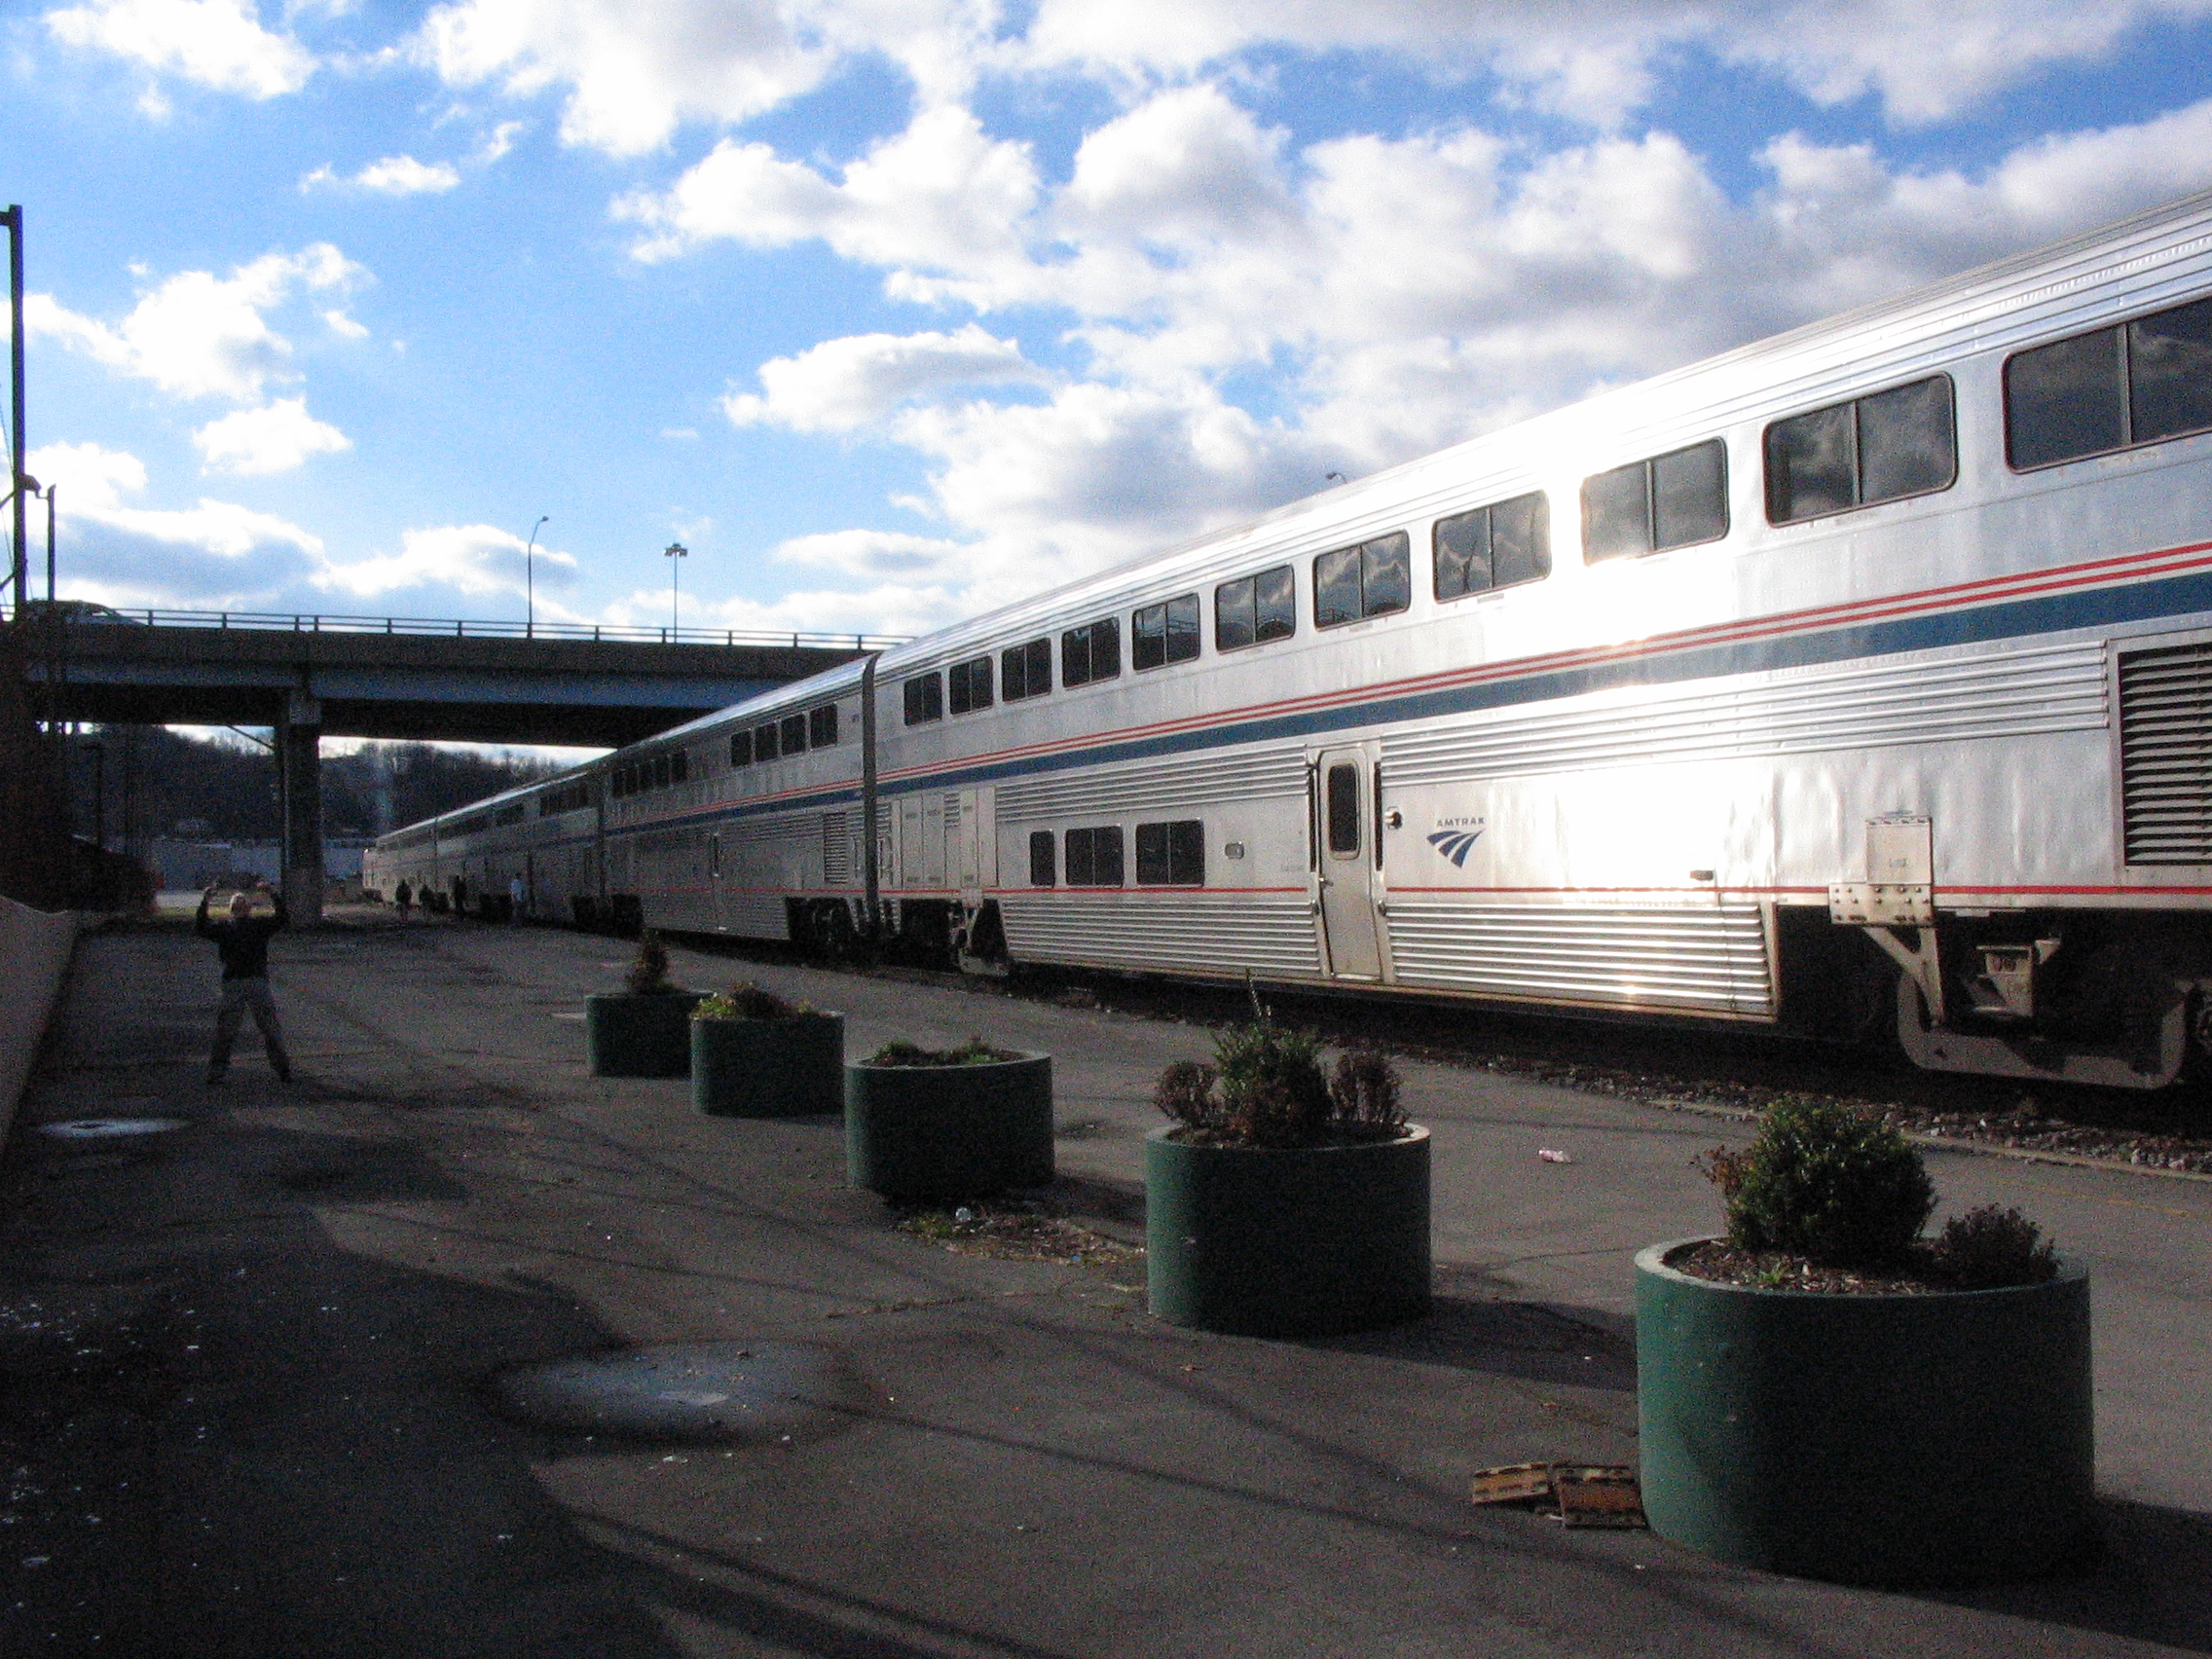 Train 30, Capitol Limited | North America by Rail